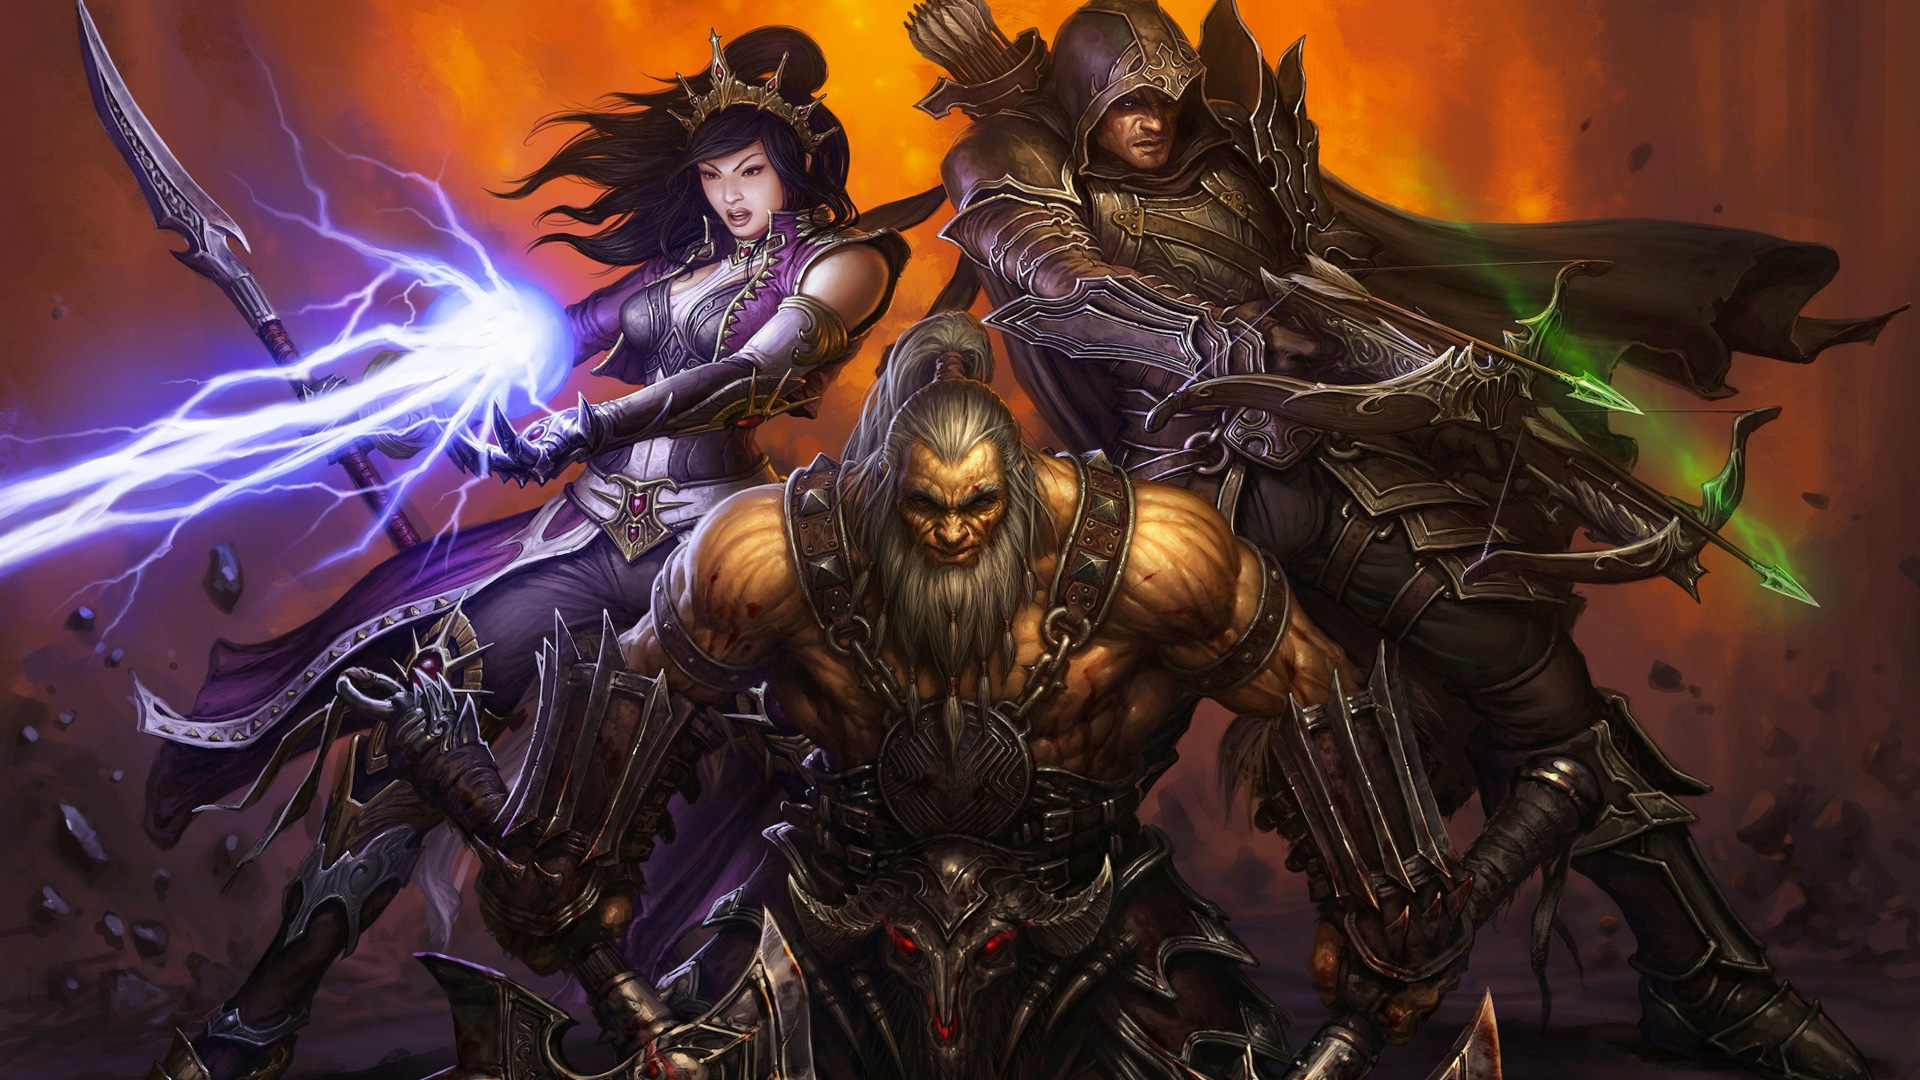 Free Diablo III Wallpaper in 1920x1080